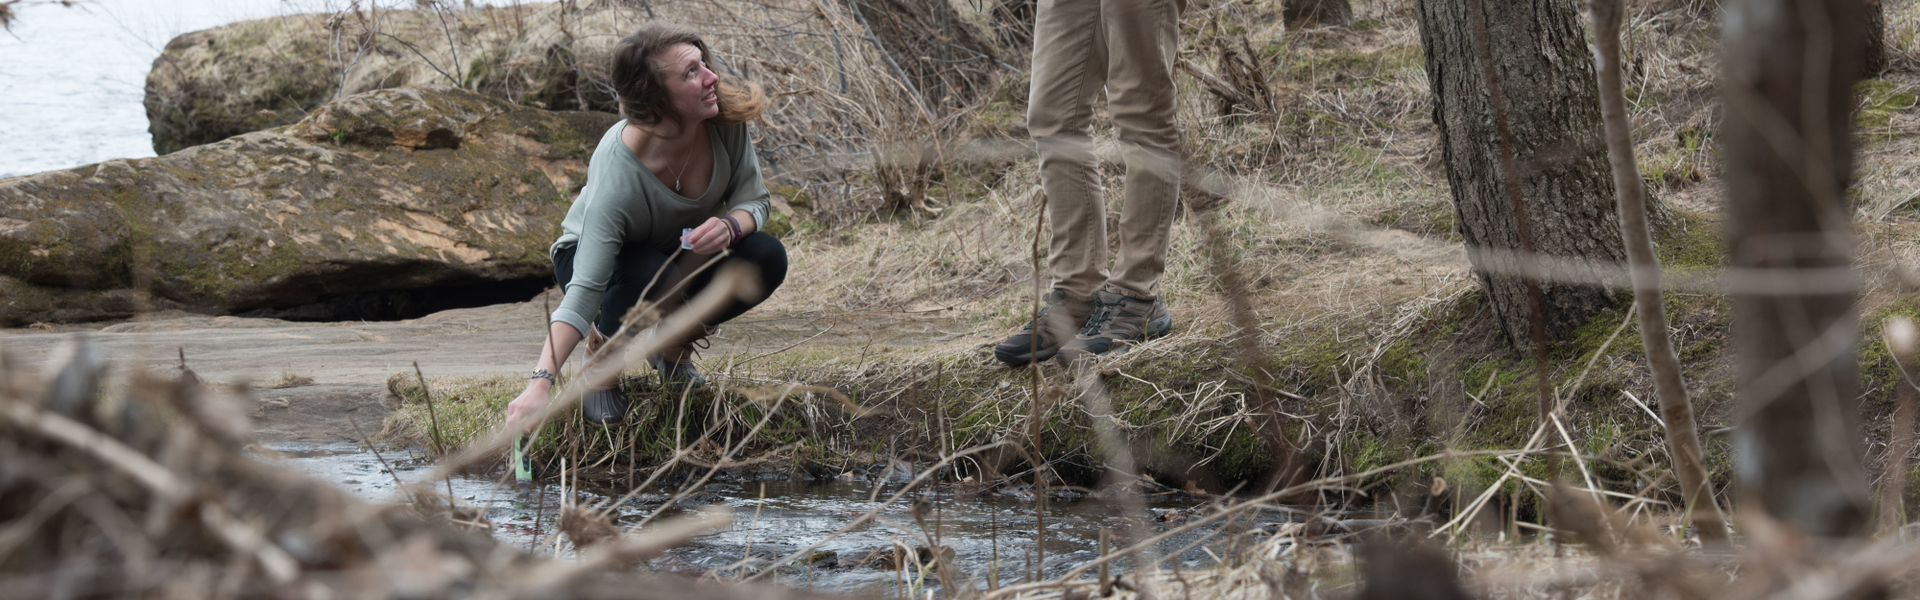 UW-Eau Claire student researchers Samantha Bartnik and Adam Wiest